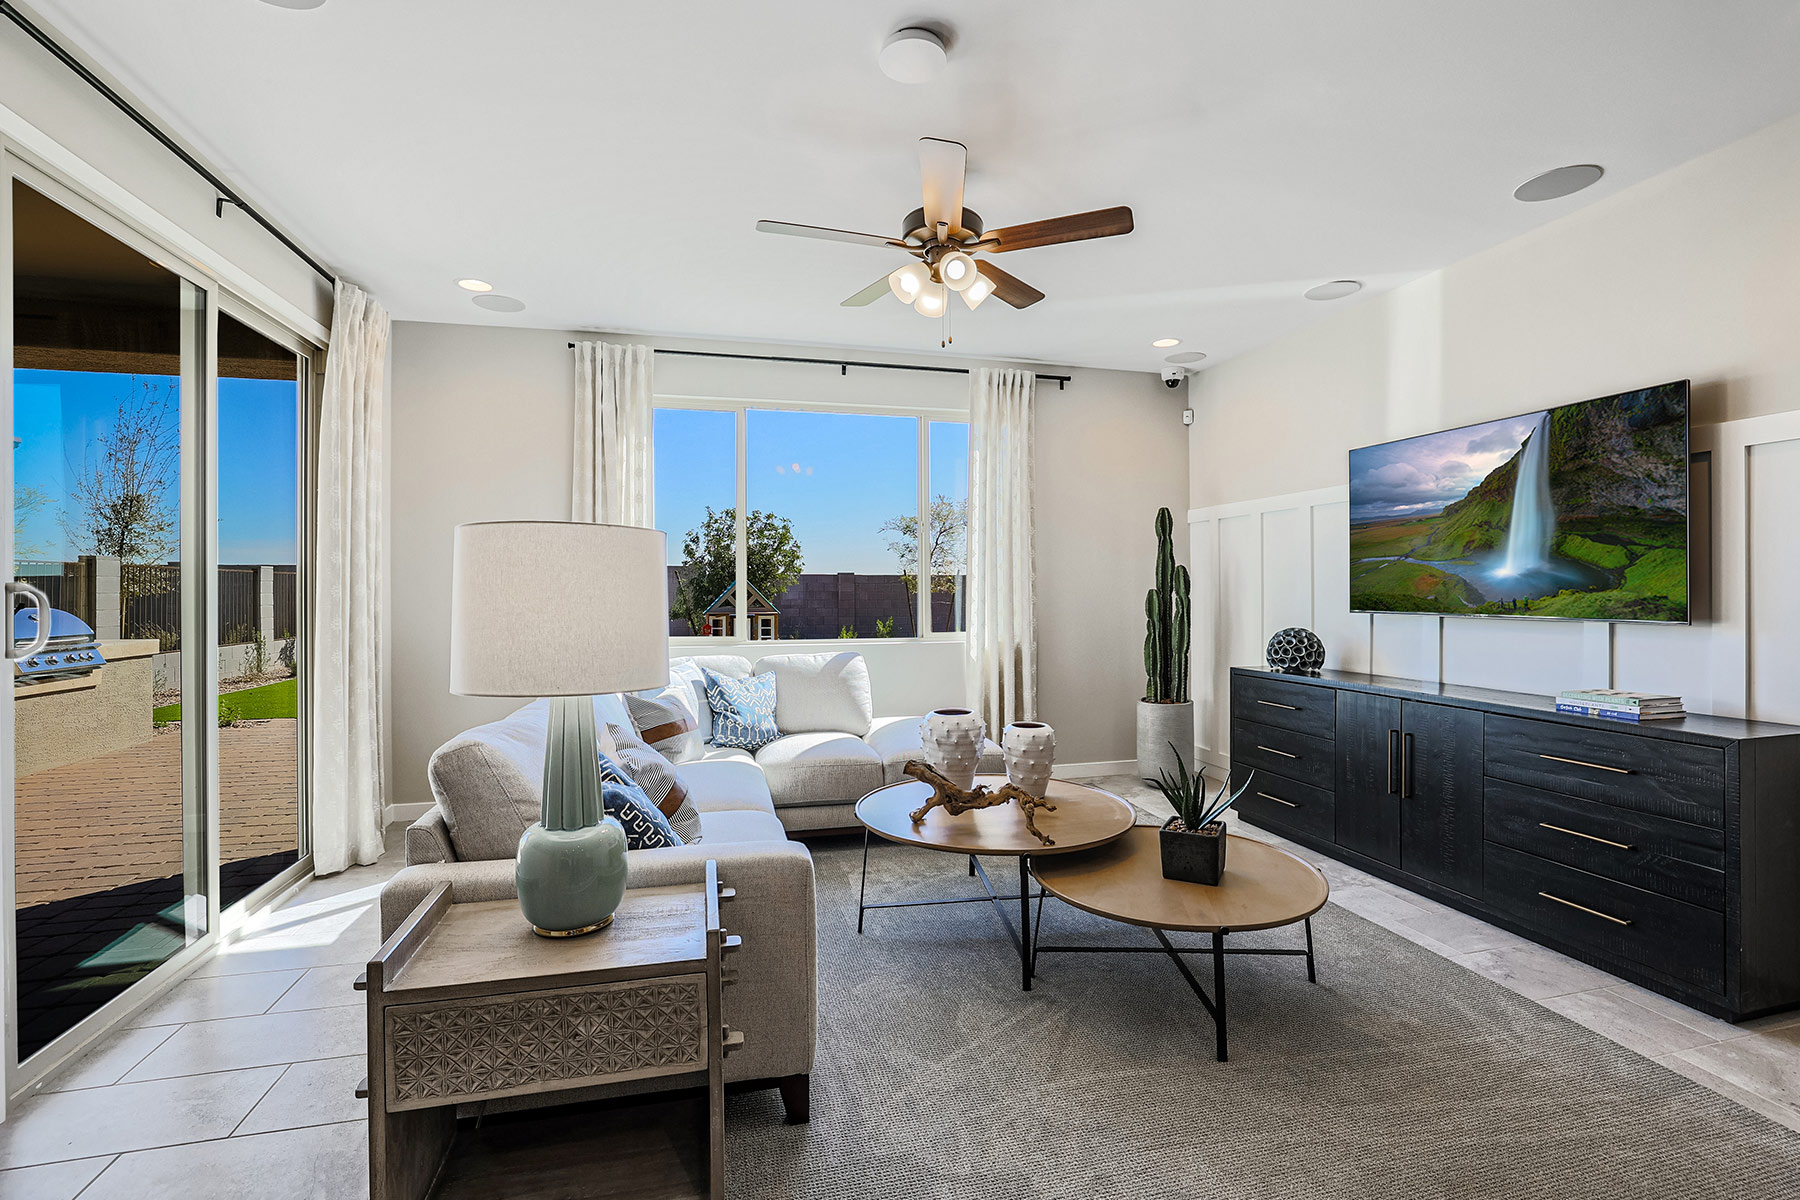 Aries Plan MATPHX_AZC_Aries_GR_BY_1800x1200 at Azure Canyon in Litchfield Park Arizona by Mattamy Homes